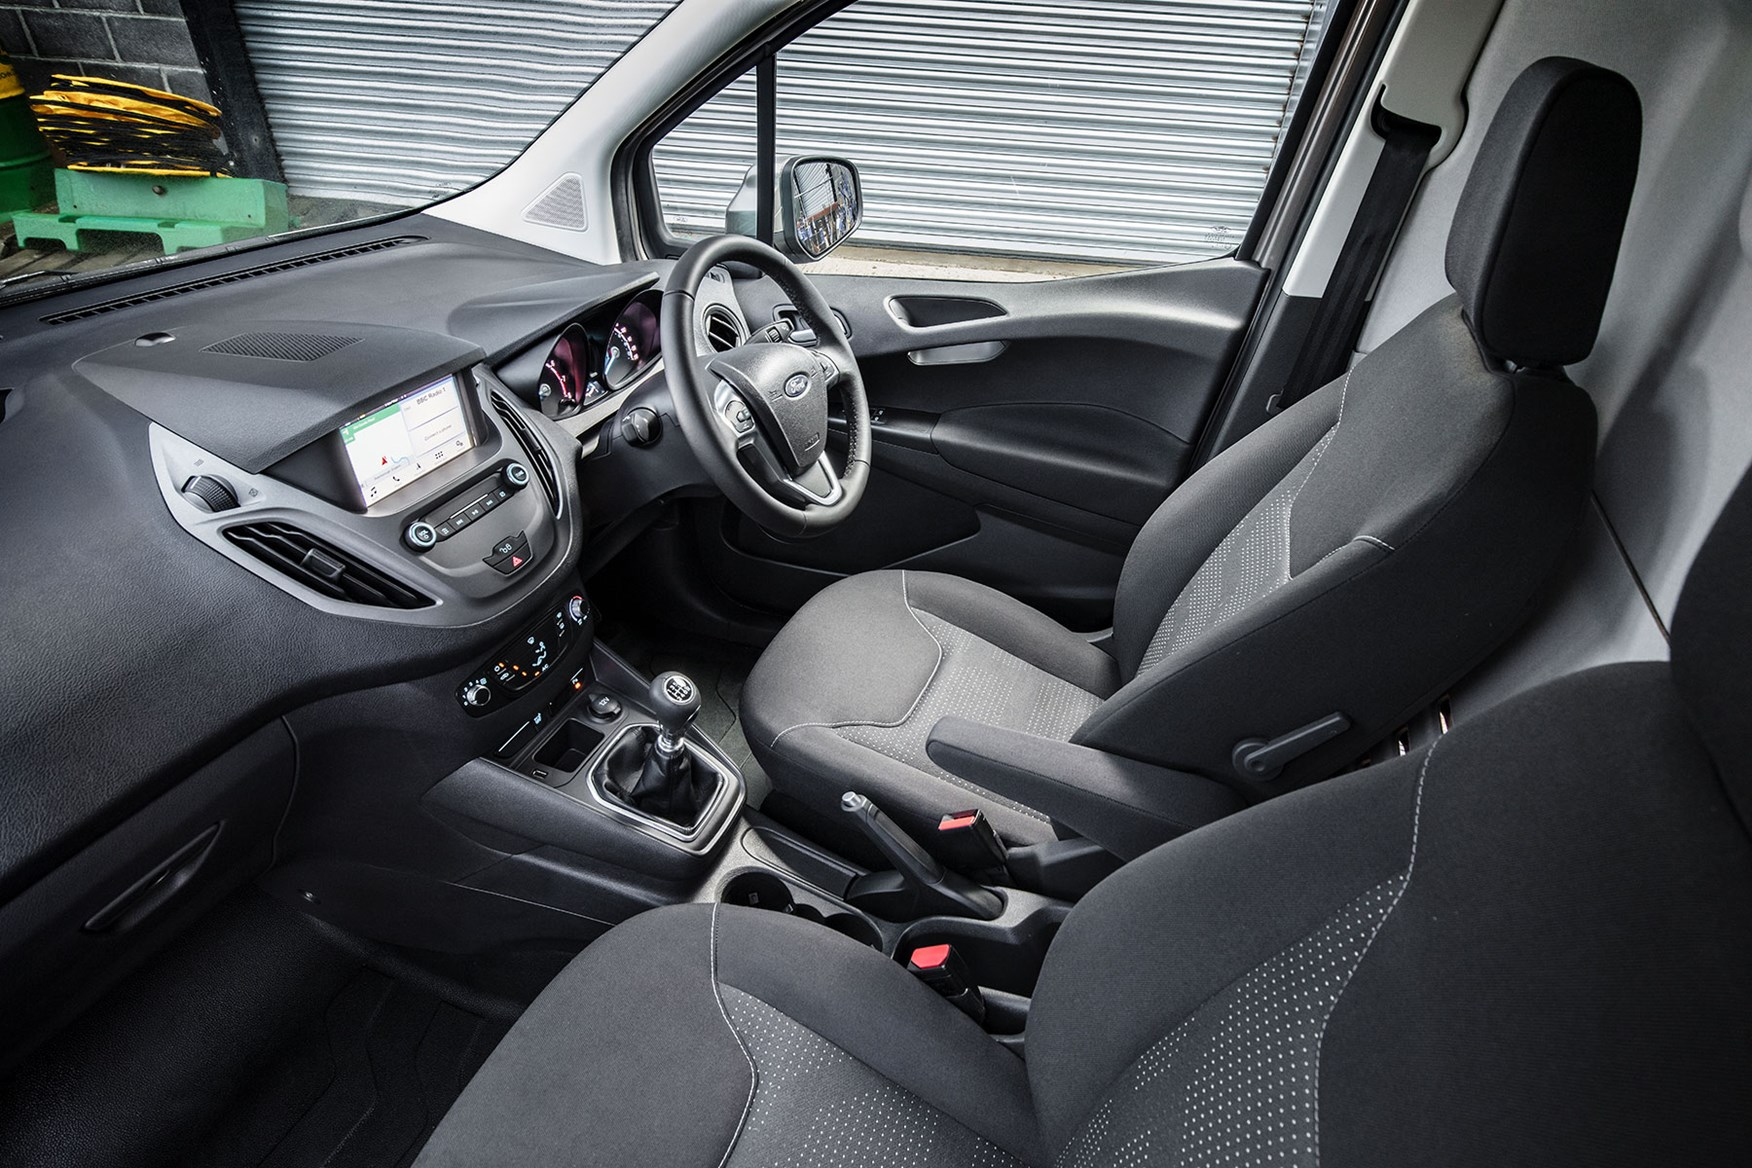 Ford Transit Courier review - cab interior after 2018 facelift